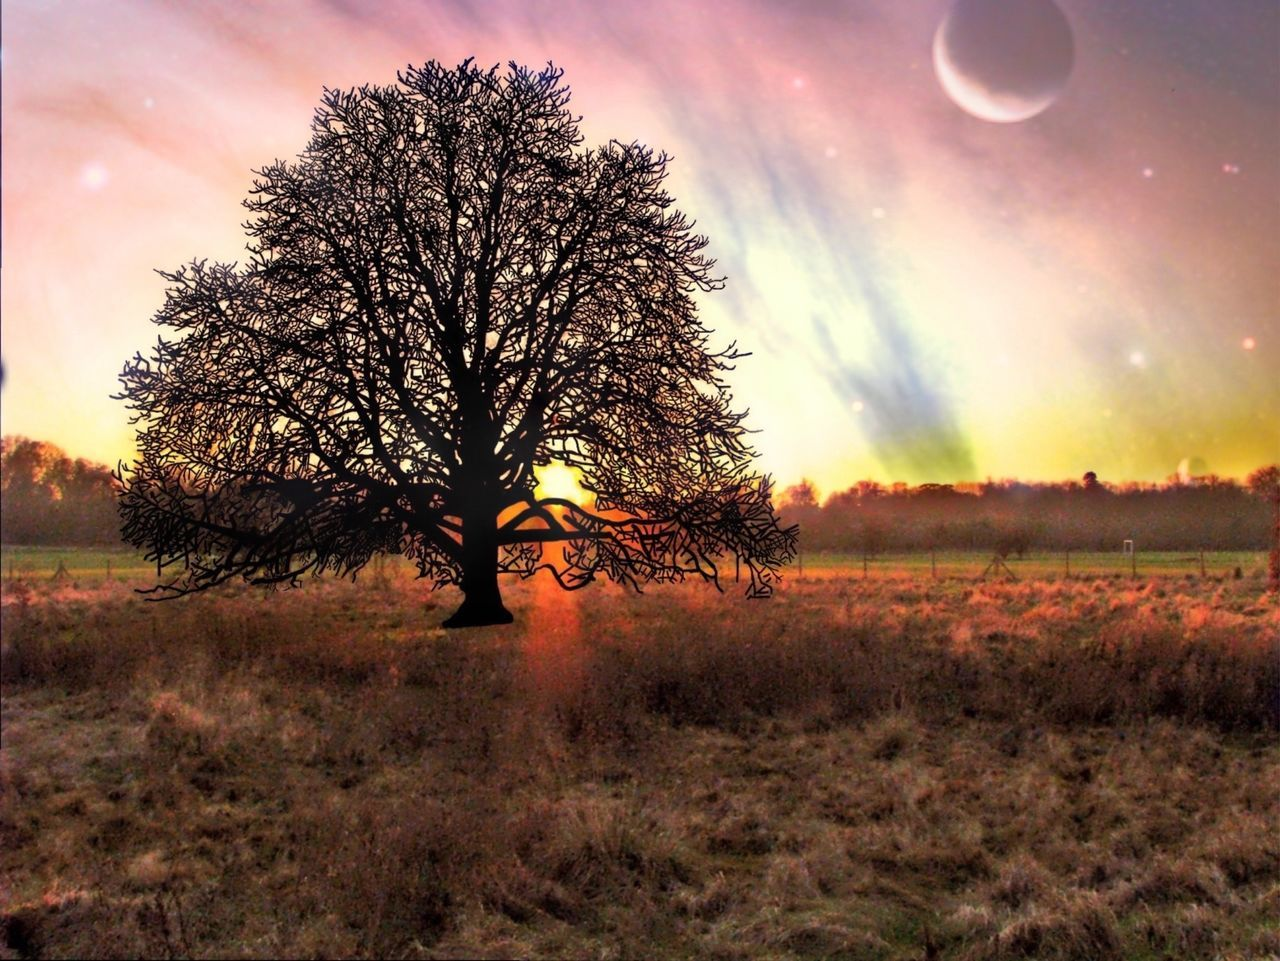 tree, bare tree, nature, field, beauty in nature, scenics, landscape, tranquility, sunset, tranquil scene, outdoors, sky, lone, tree trunk, grass, branch, no people, day